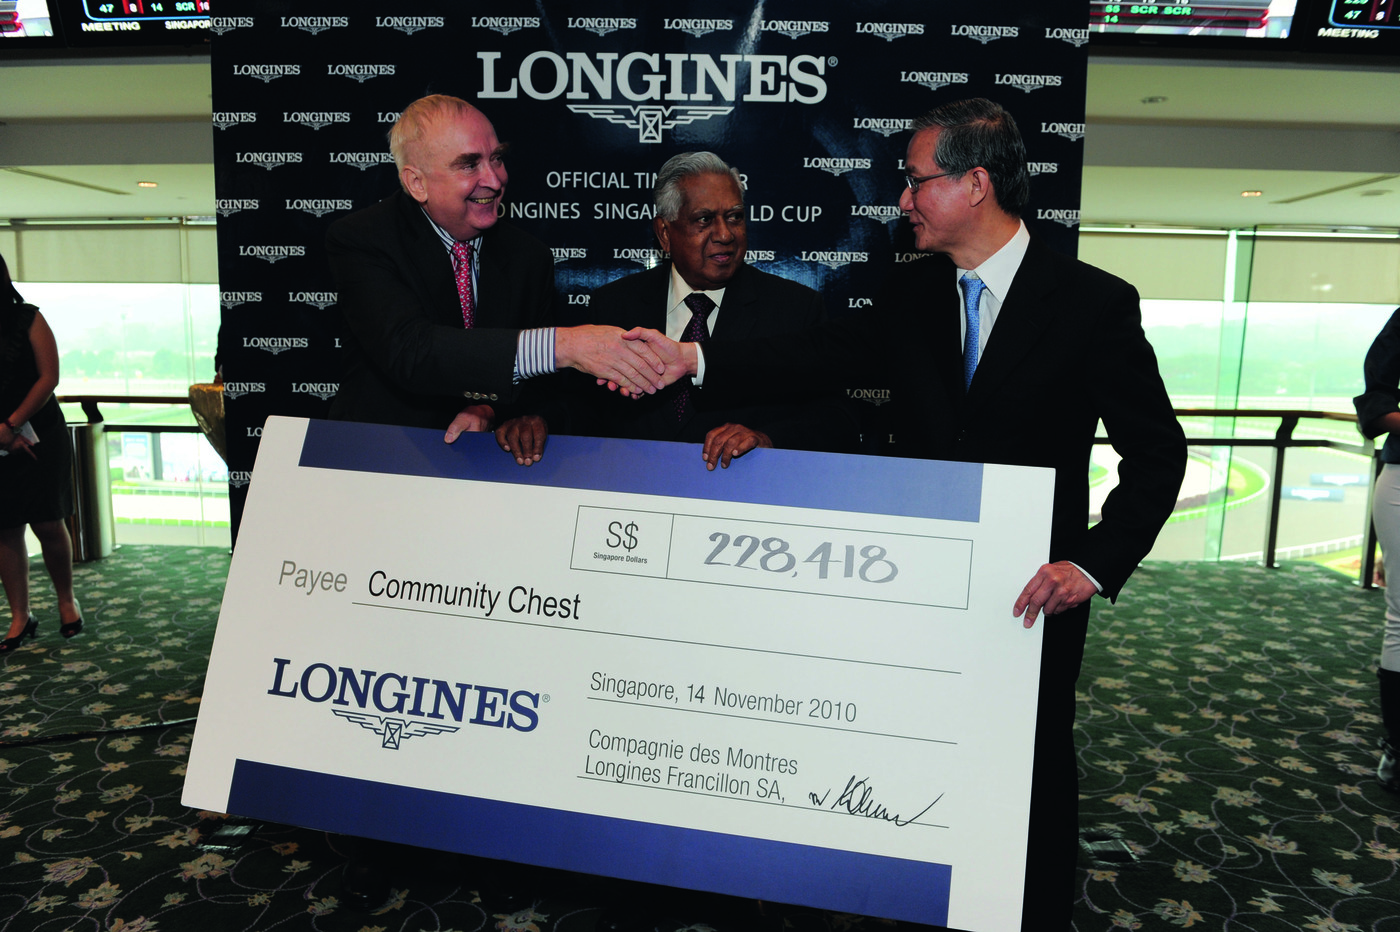 Longines Flat Racing Event: Longines embarks on landmark partnership with the Singapore Turf Club and launches the Longines Singapore Gold Cup 3